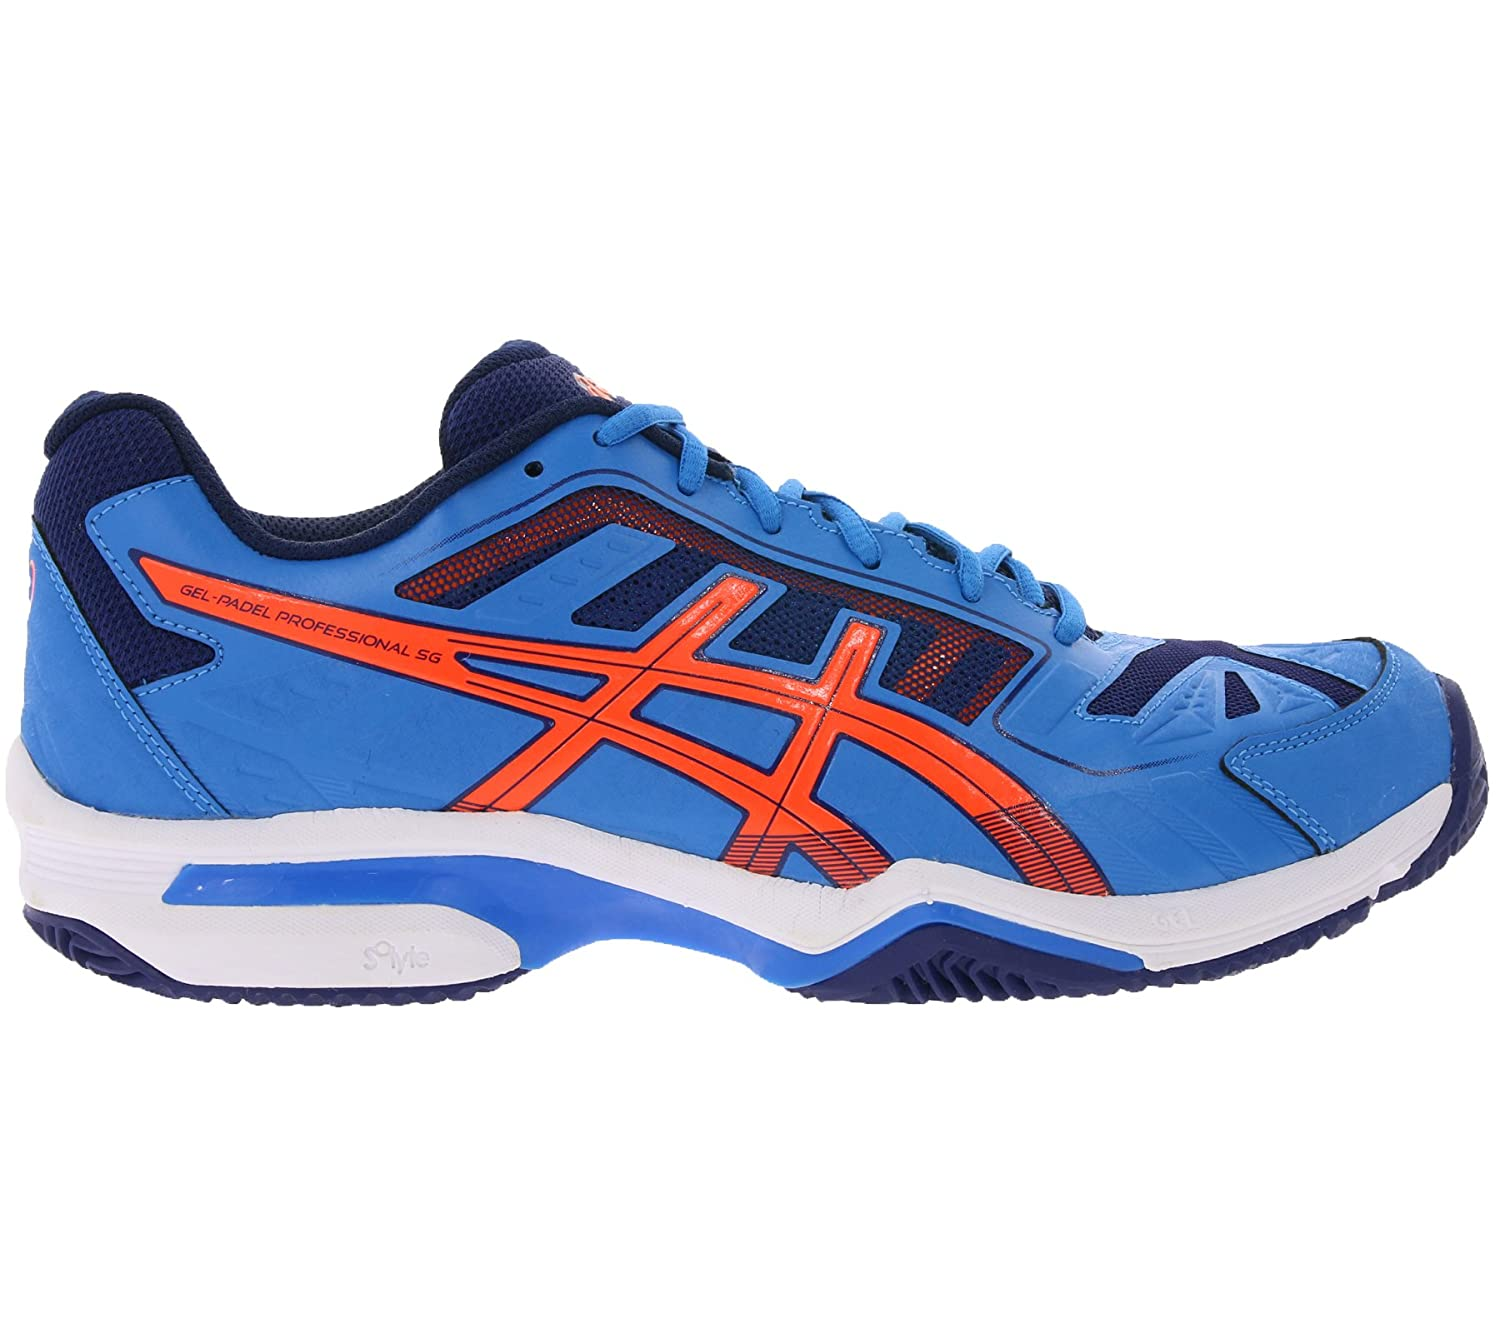 310ed09b0 ASICS Gel Padel Professional 2 SG e514 N 16 Men blue Azul Naranja Size 46 1  2  Amazon.co.uk  Sports   Outdoors